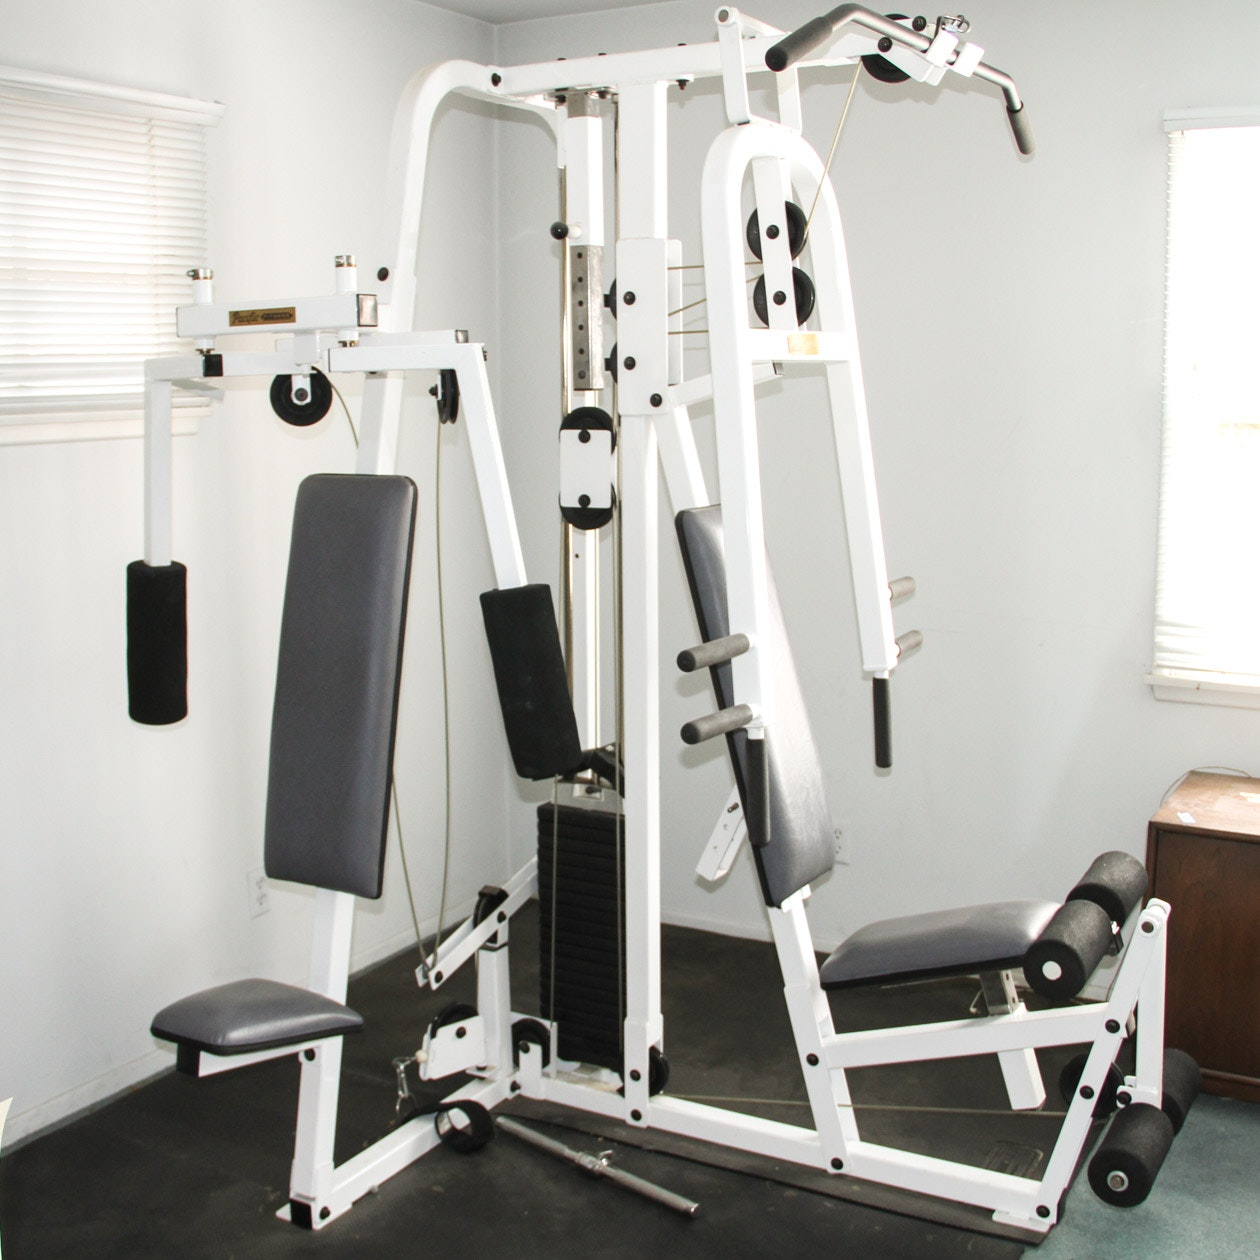 Quot malibu home fitness center by pacific ebth